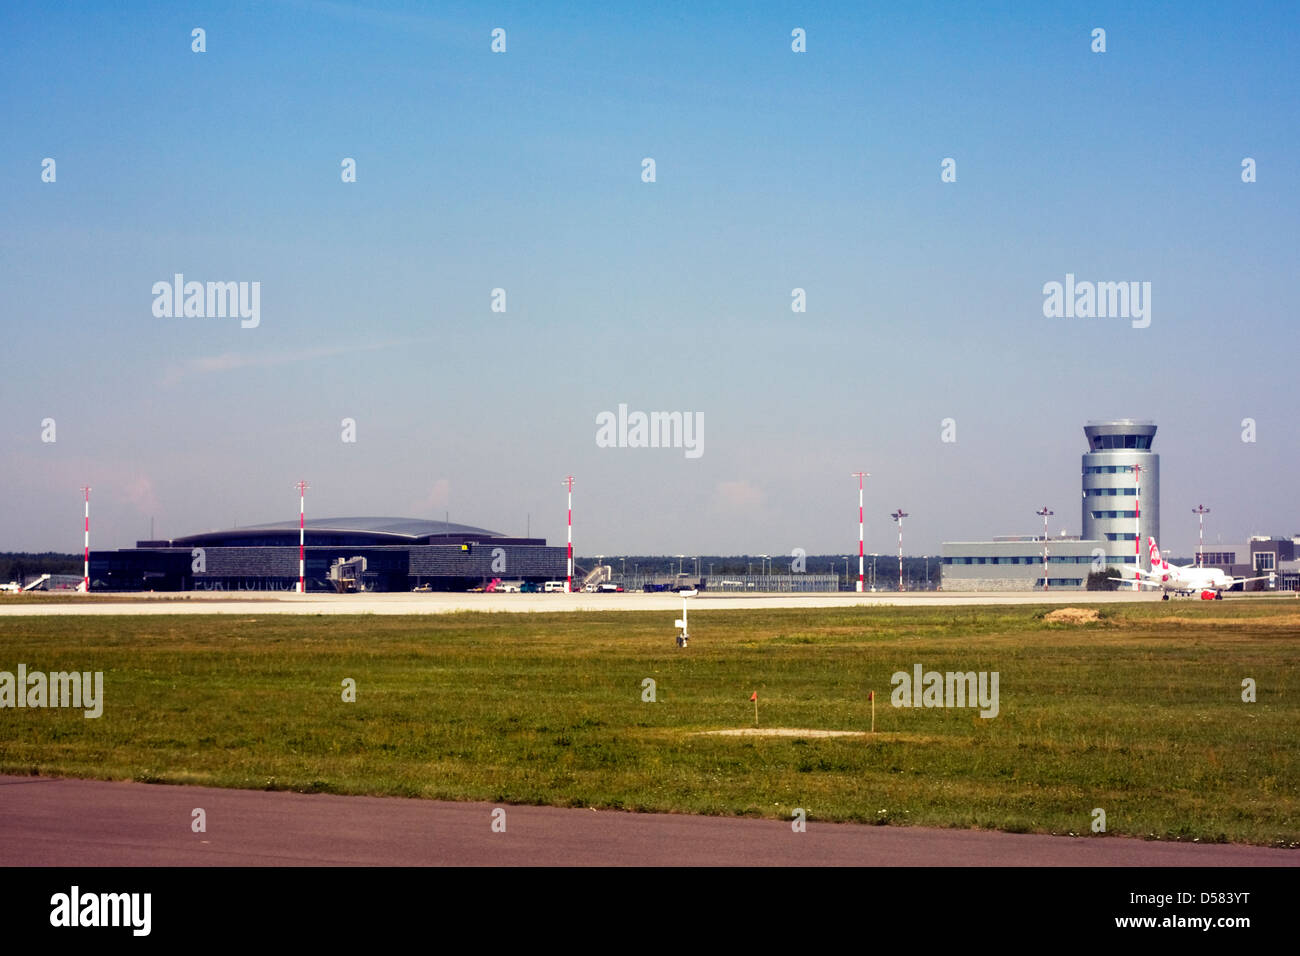 Terminal and control tower at Rzeszow Jasionka Airport, Rzeszow, PolandStock Photo